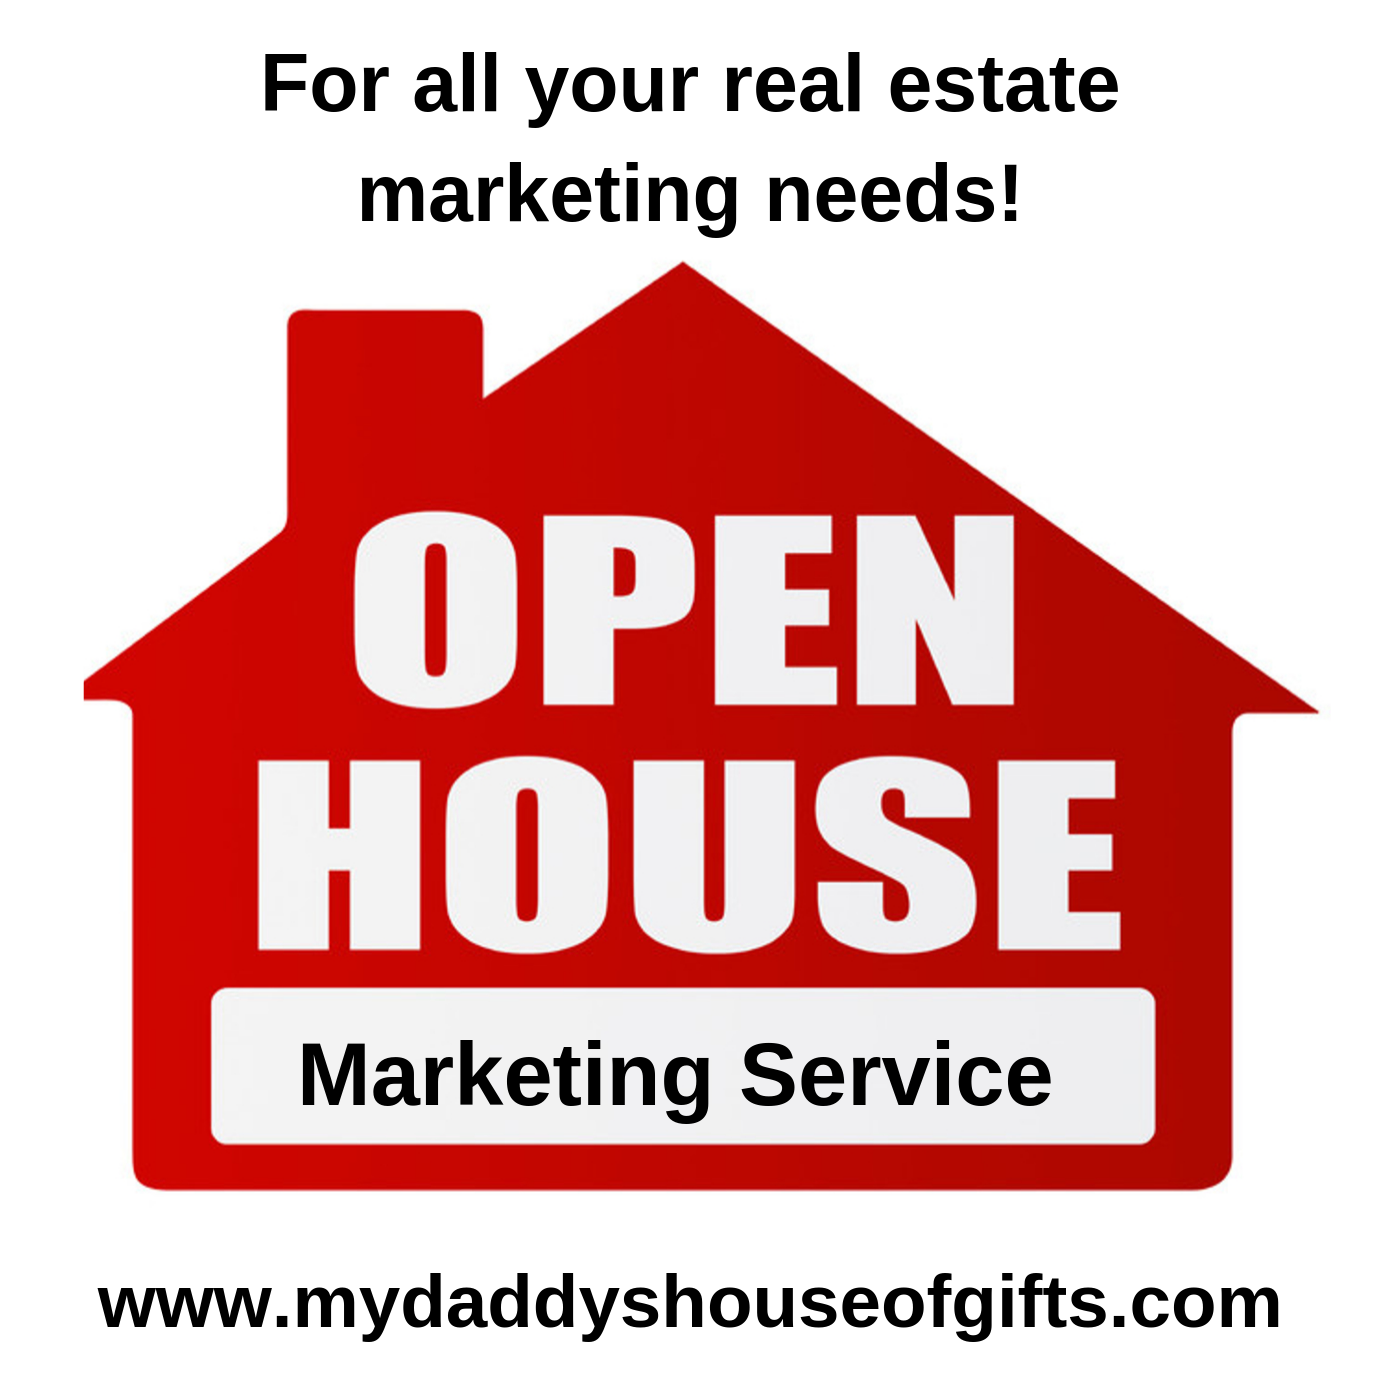 open-house-marketing-service.png